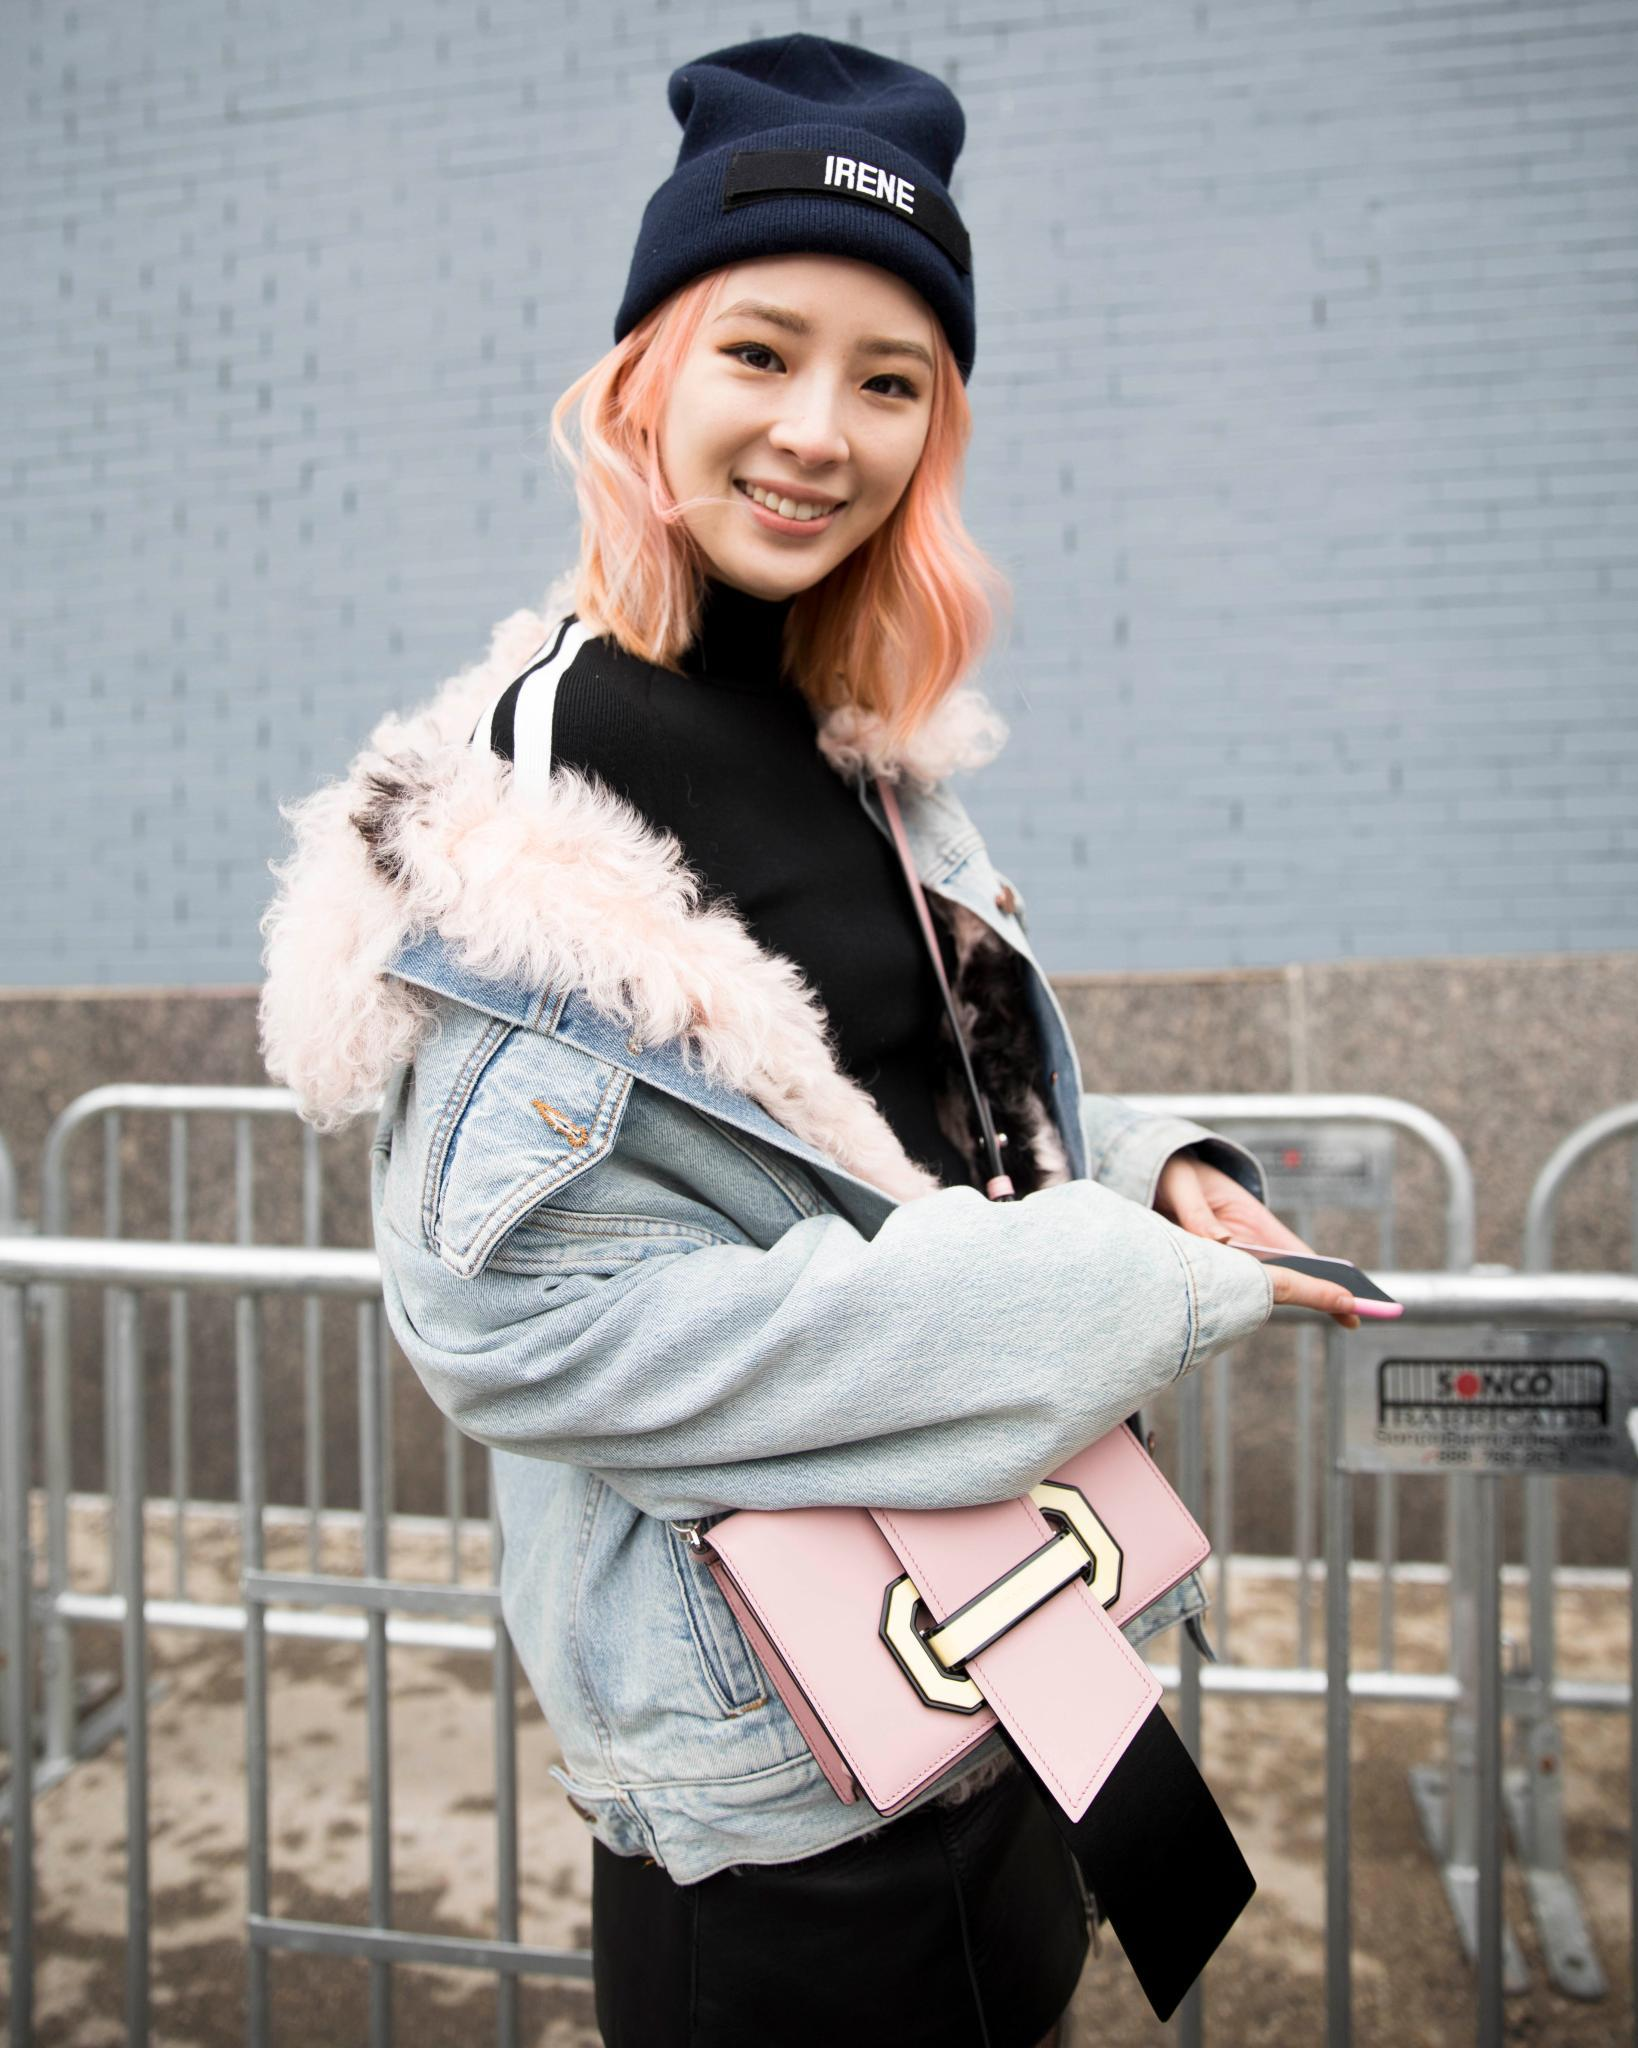 young woman with peach hair and beanie hat